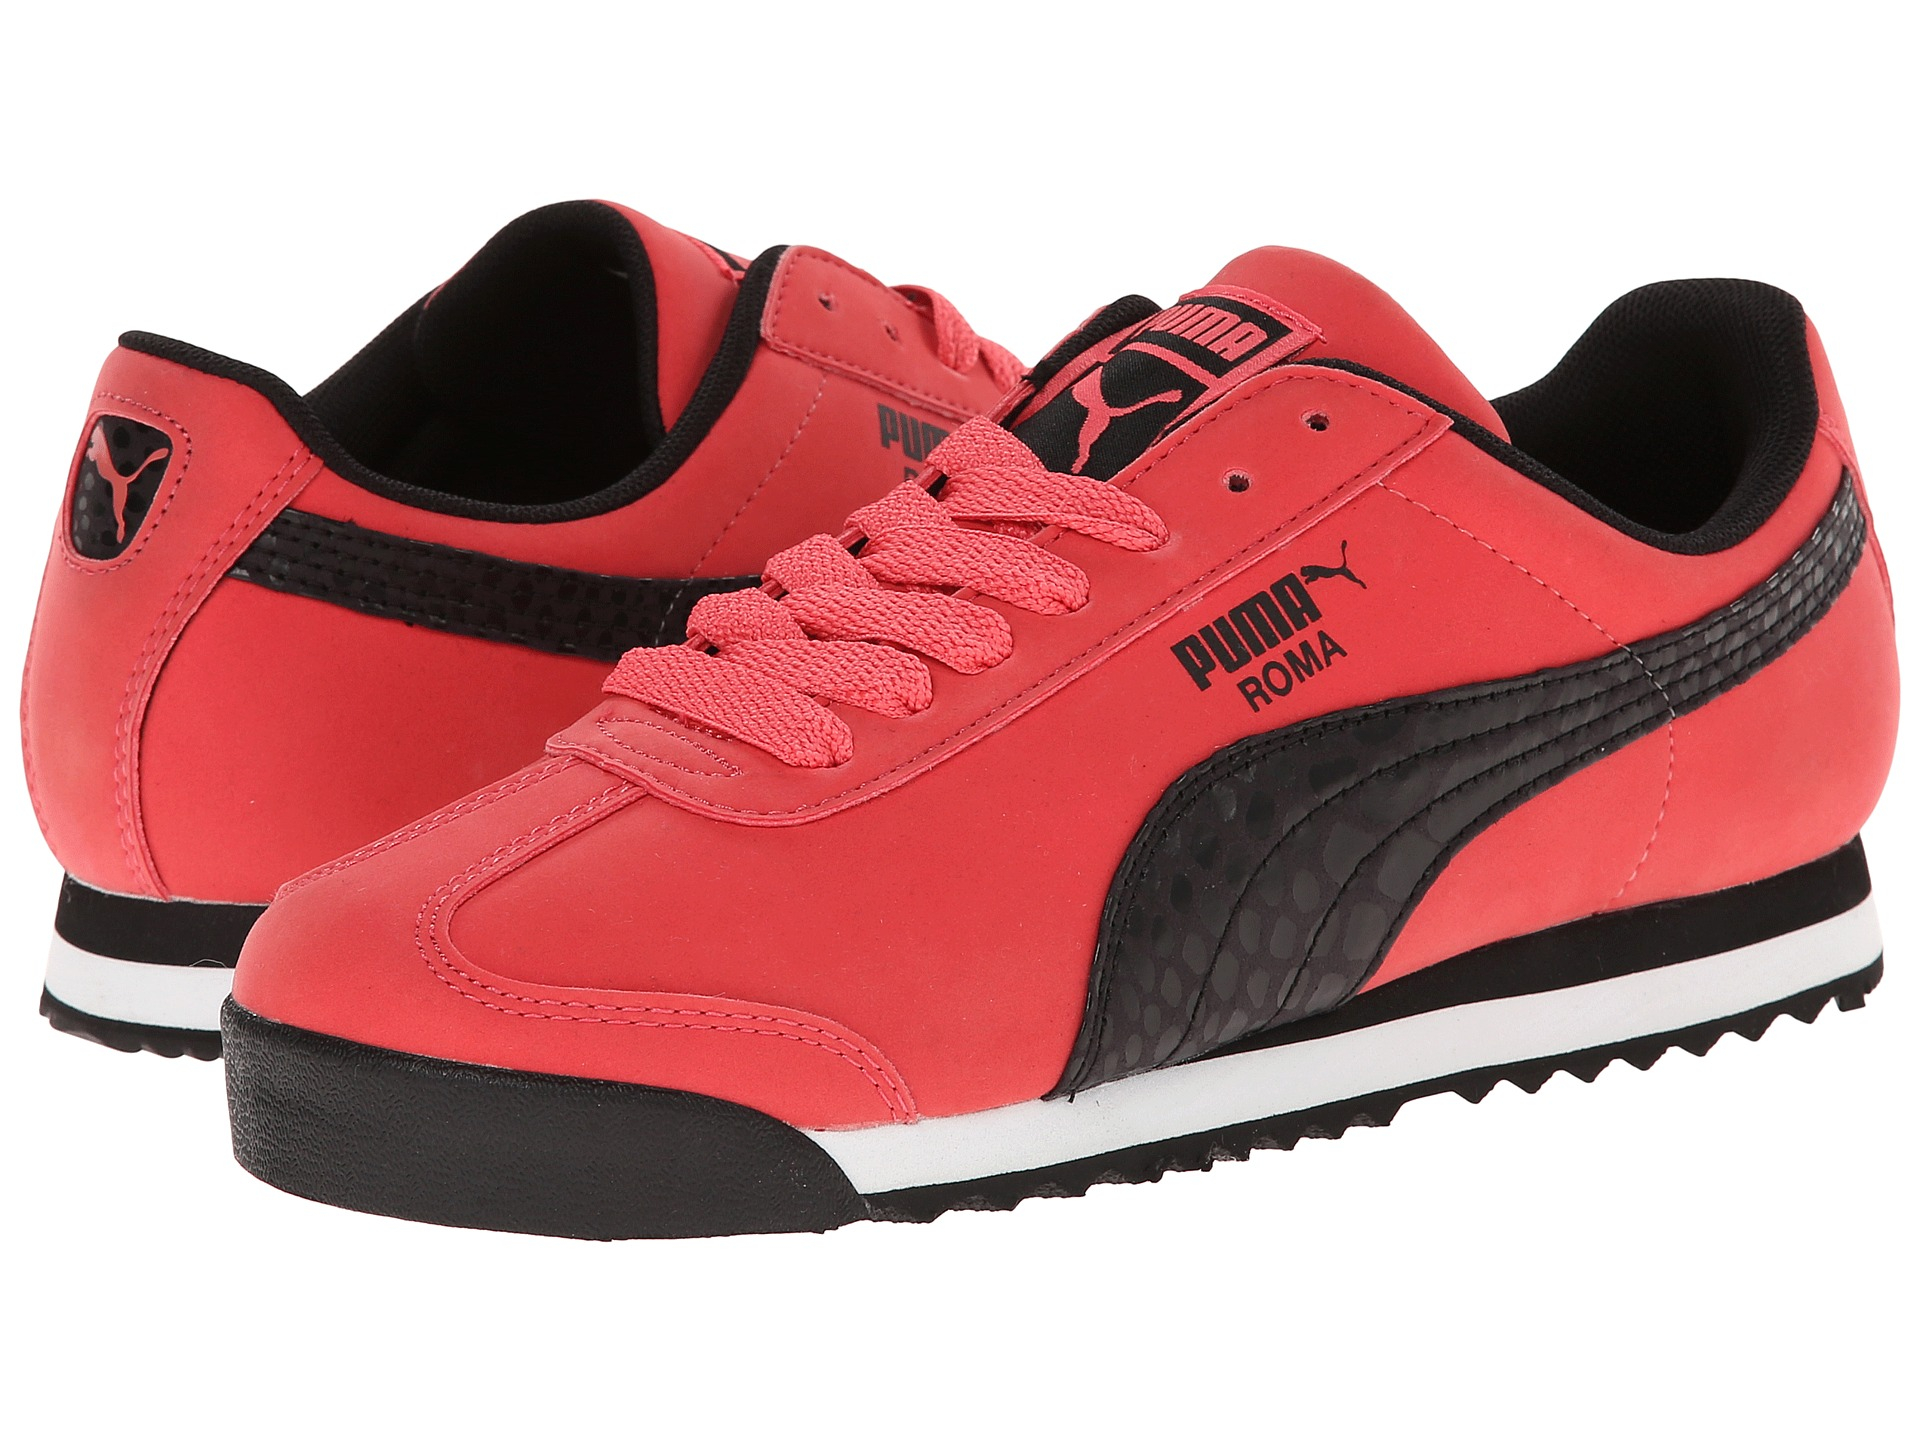 puma roma red shoes